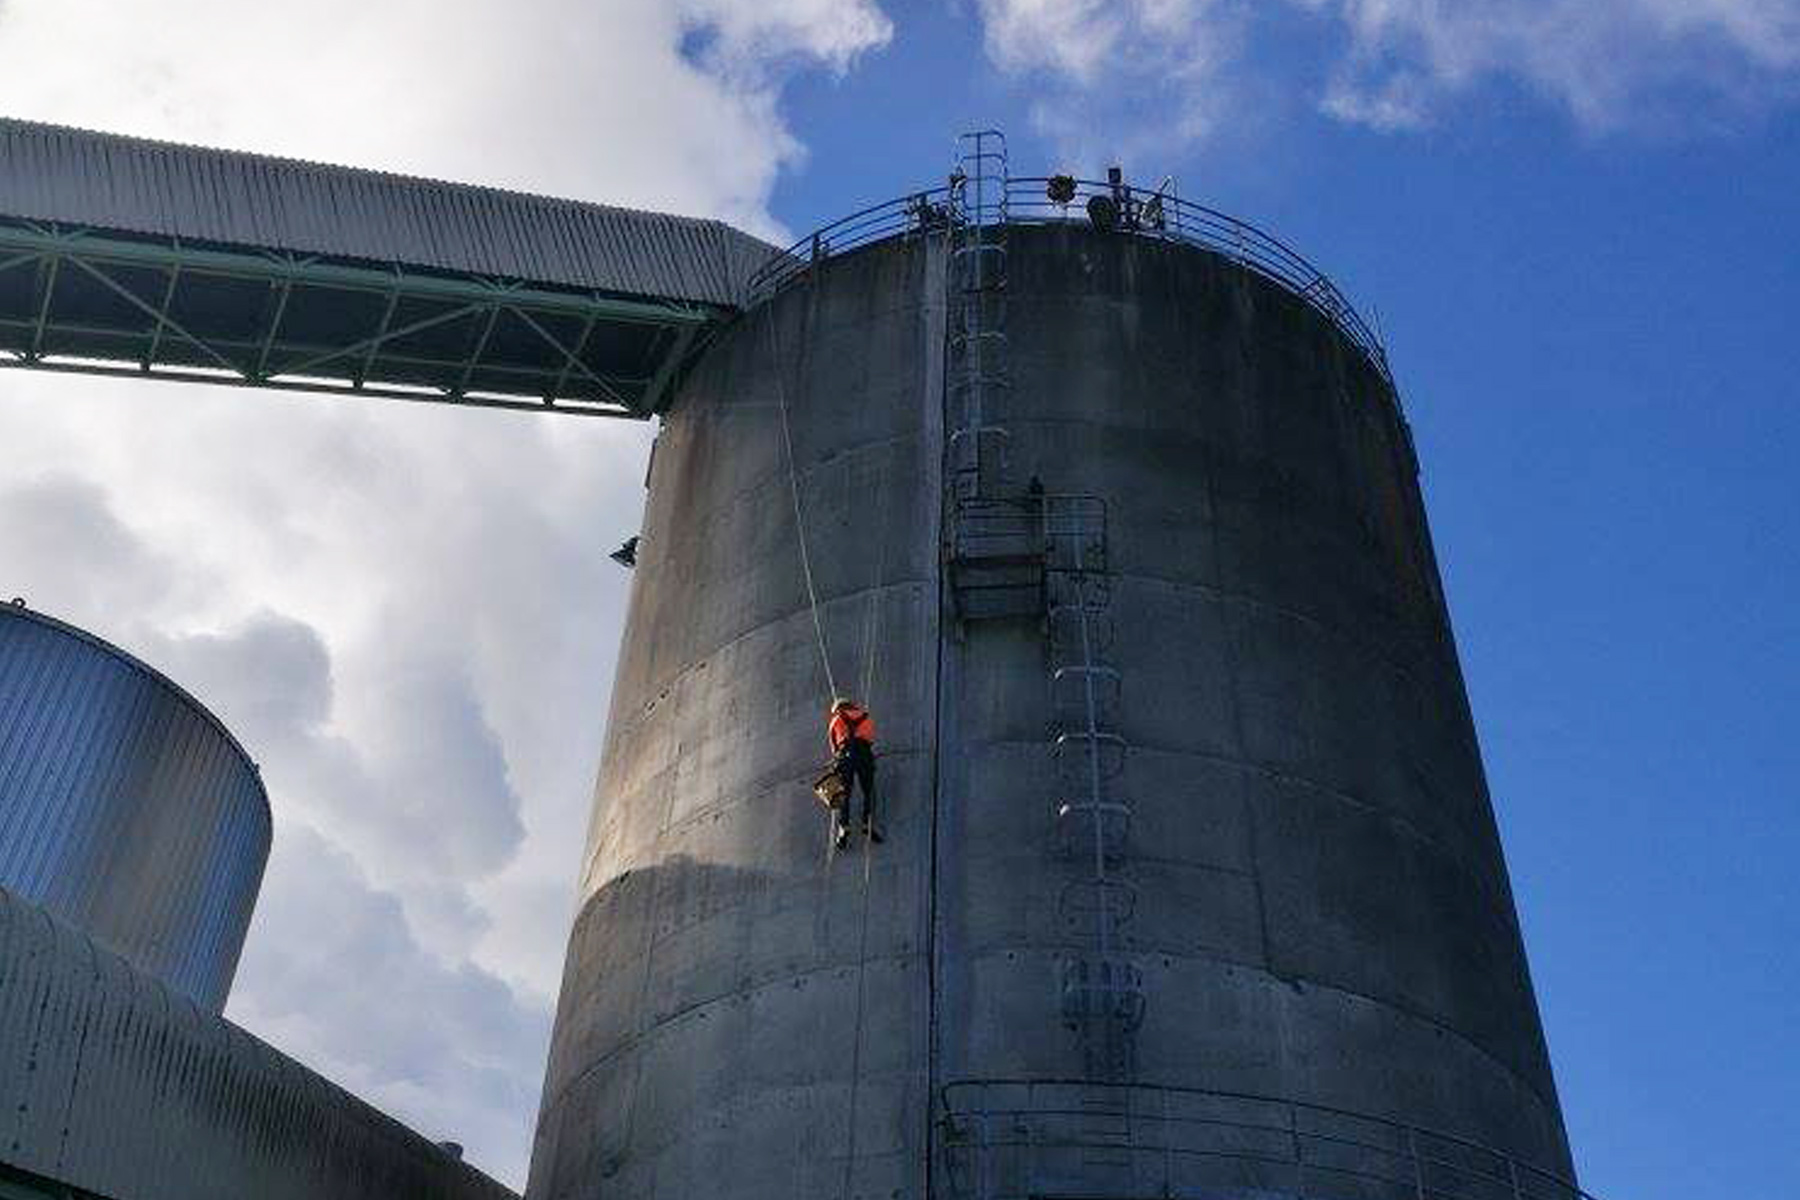 rocket scaffolding rope access outside tank